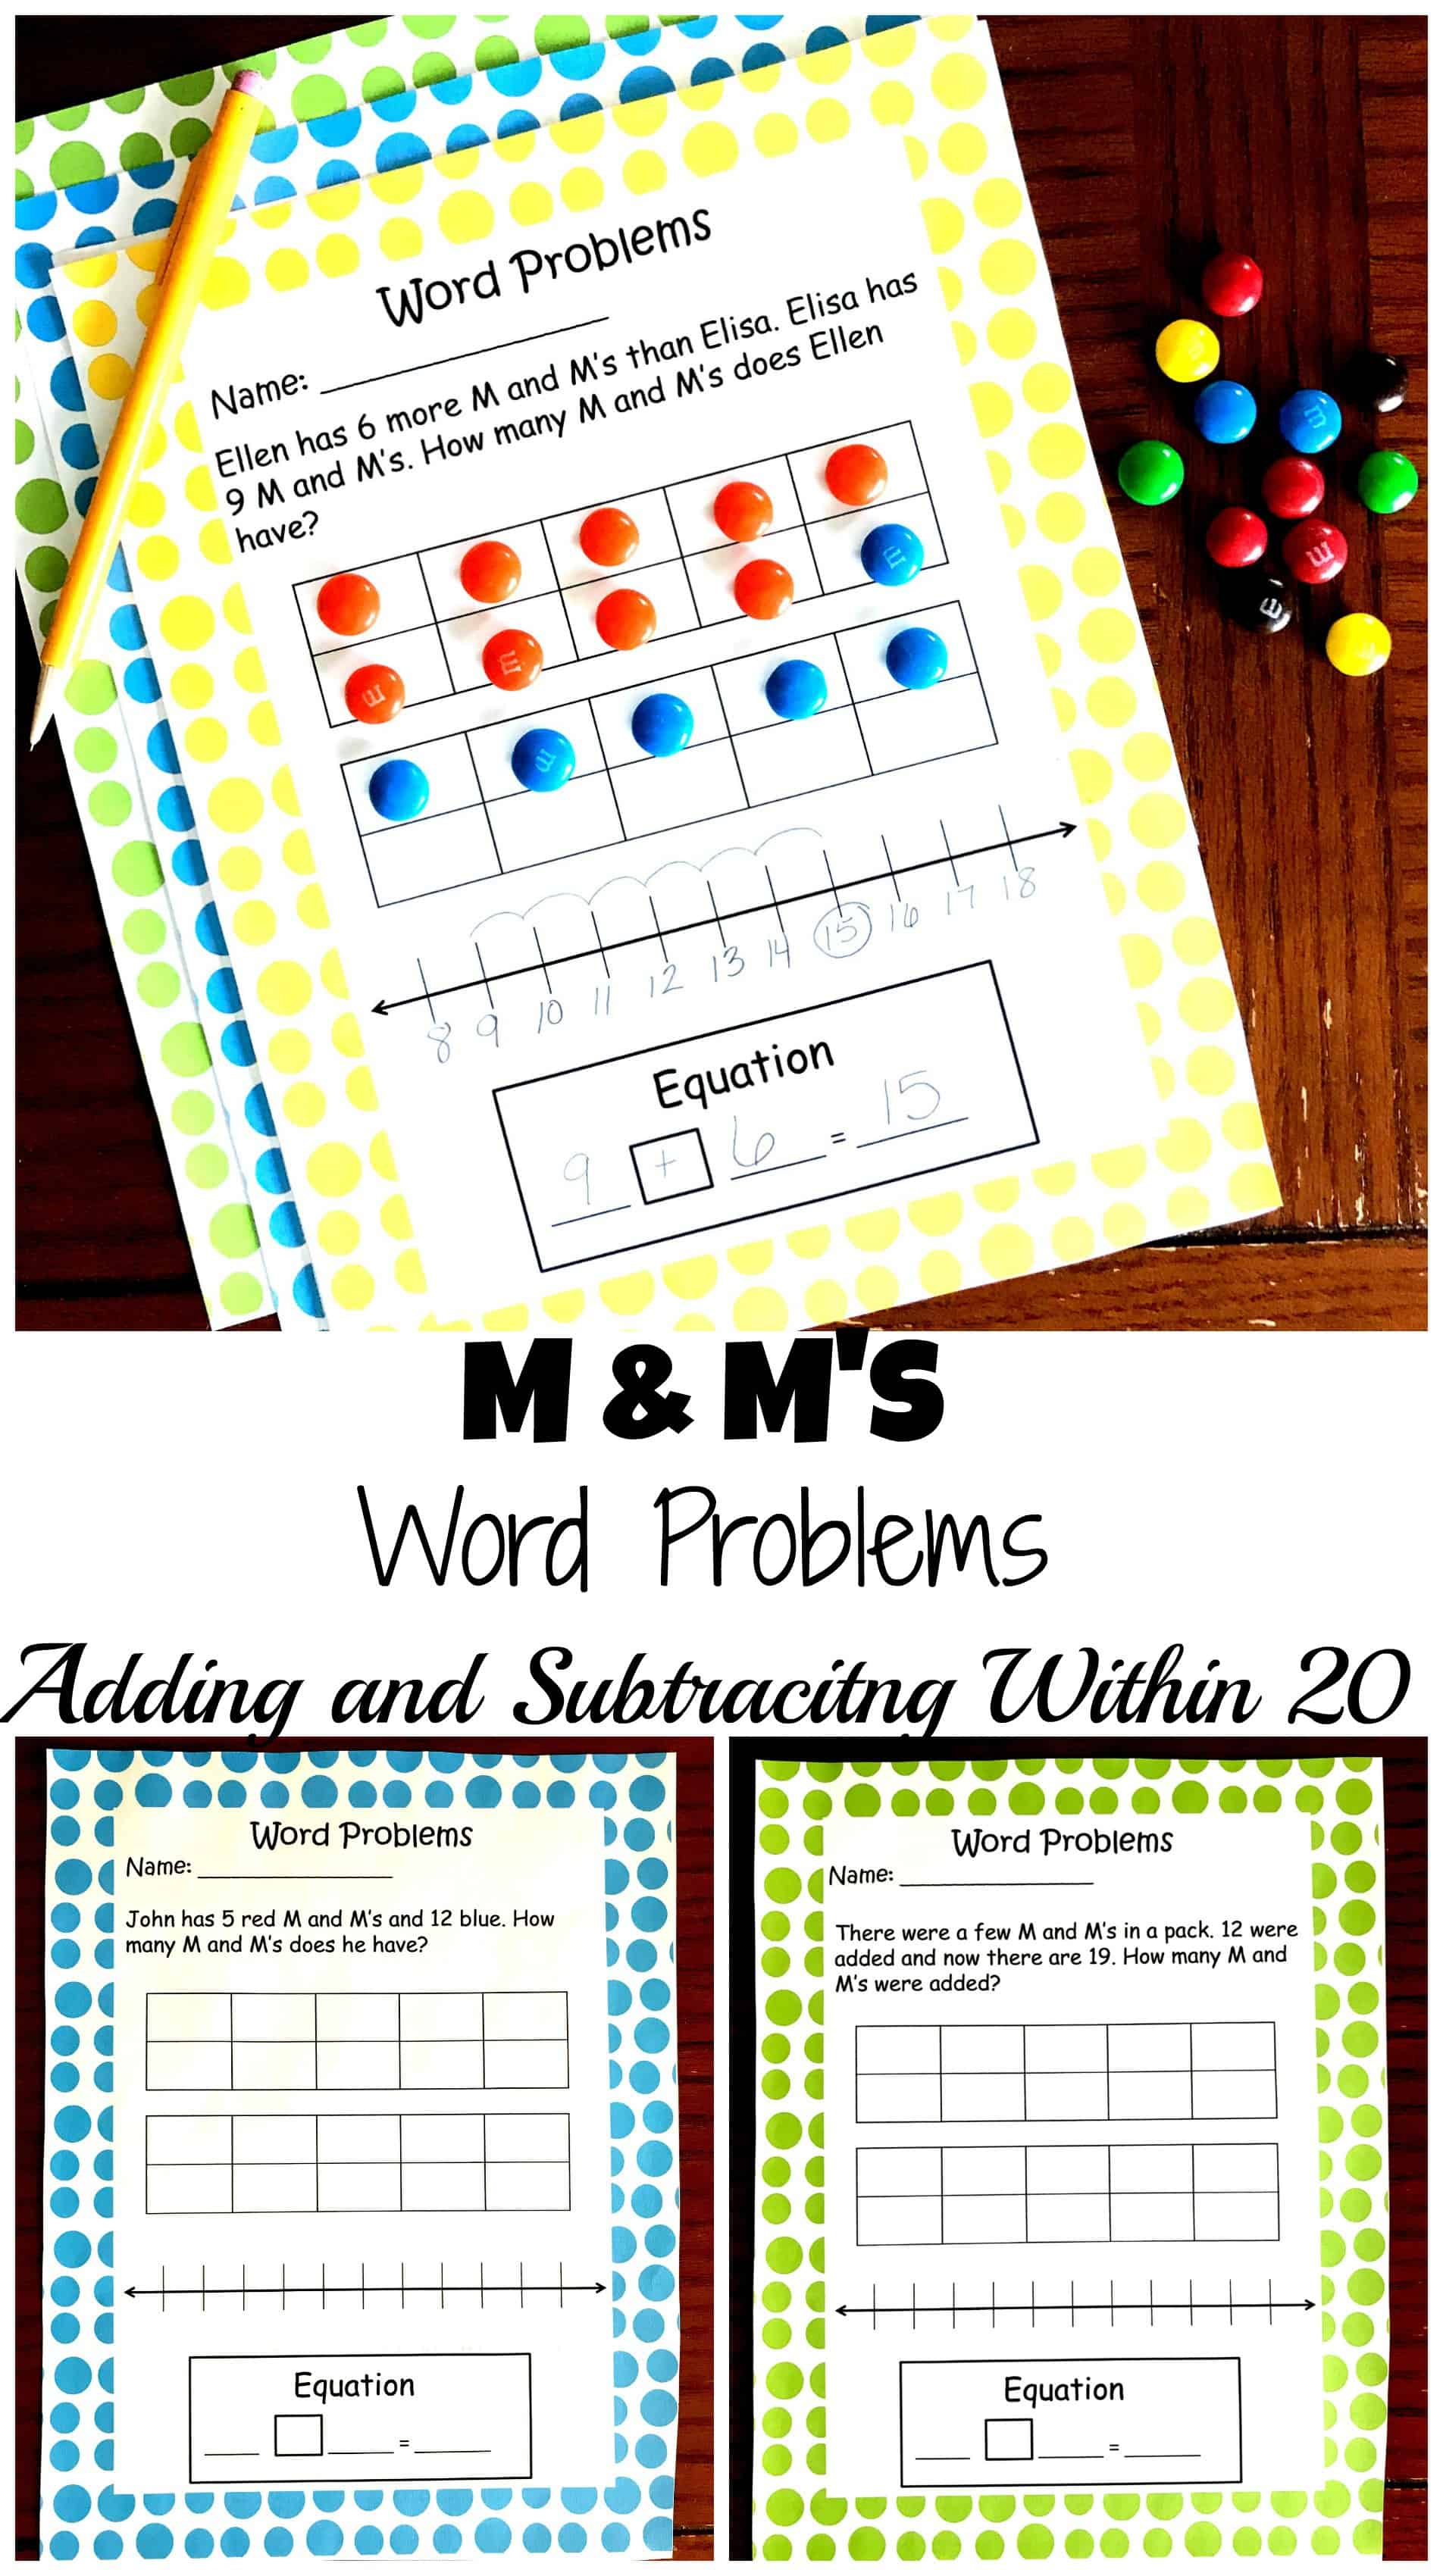 small resolution of 5 Free M \u0026 M Word Problems to Practice Adding and Subtracting Within 20